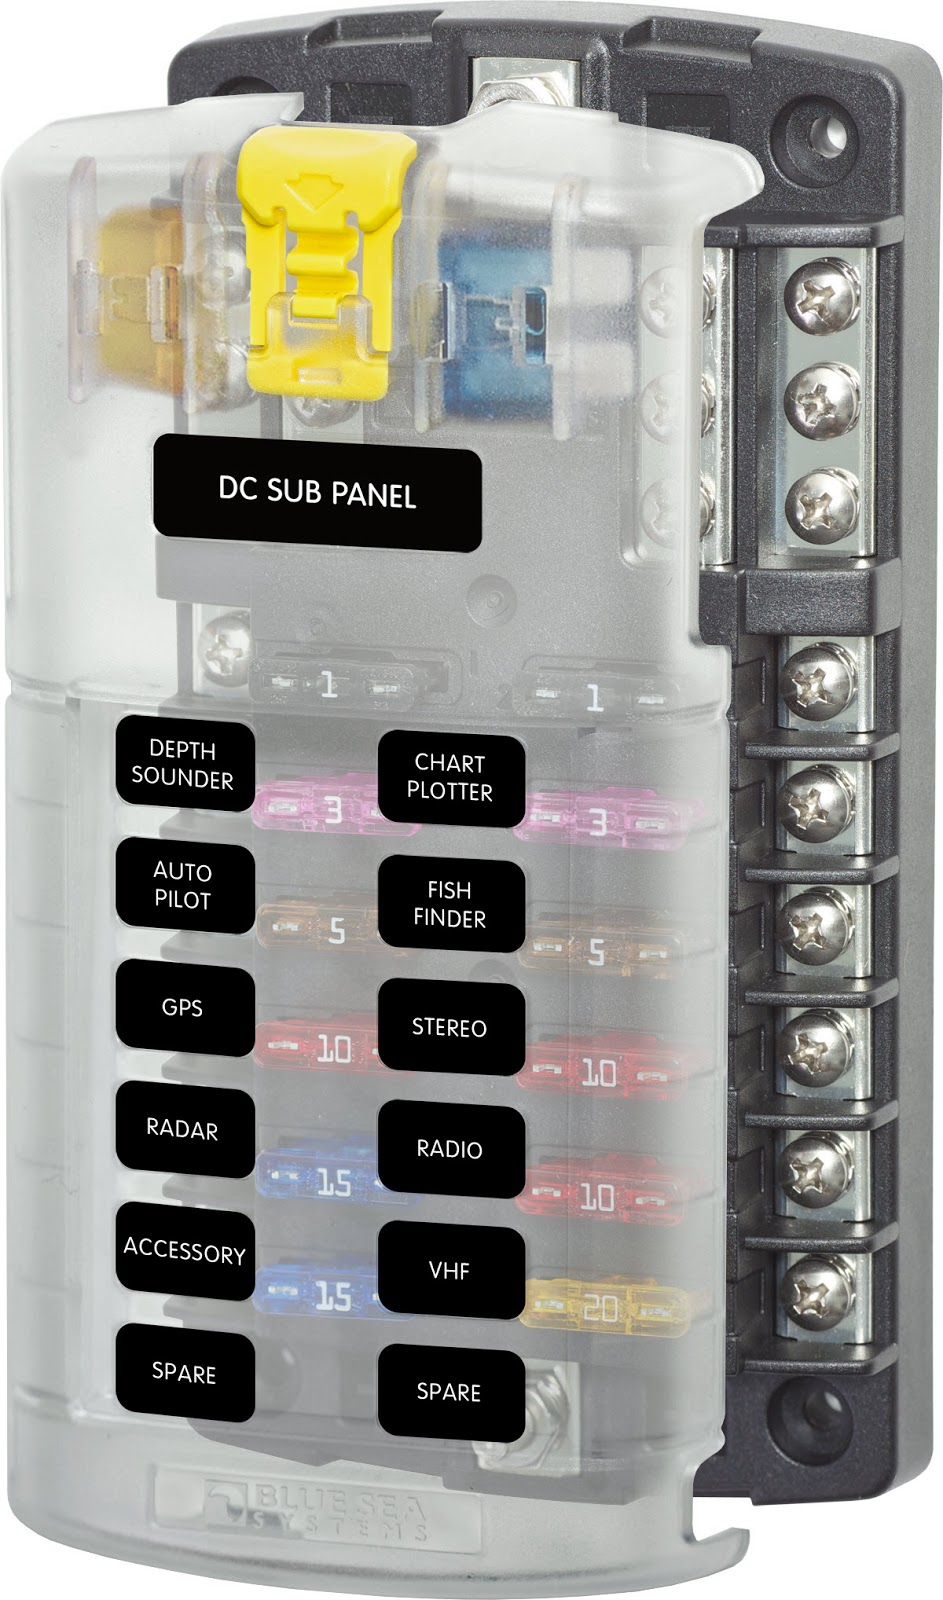 If using your existing building wiring, you should consider replacing your  existing breakers with ones rated for low voltage DC use.